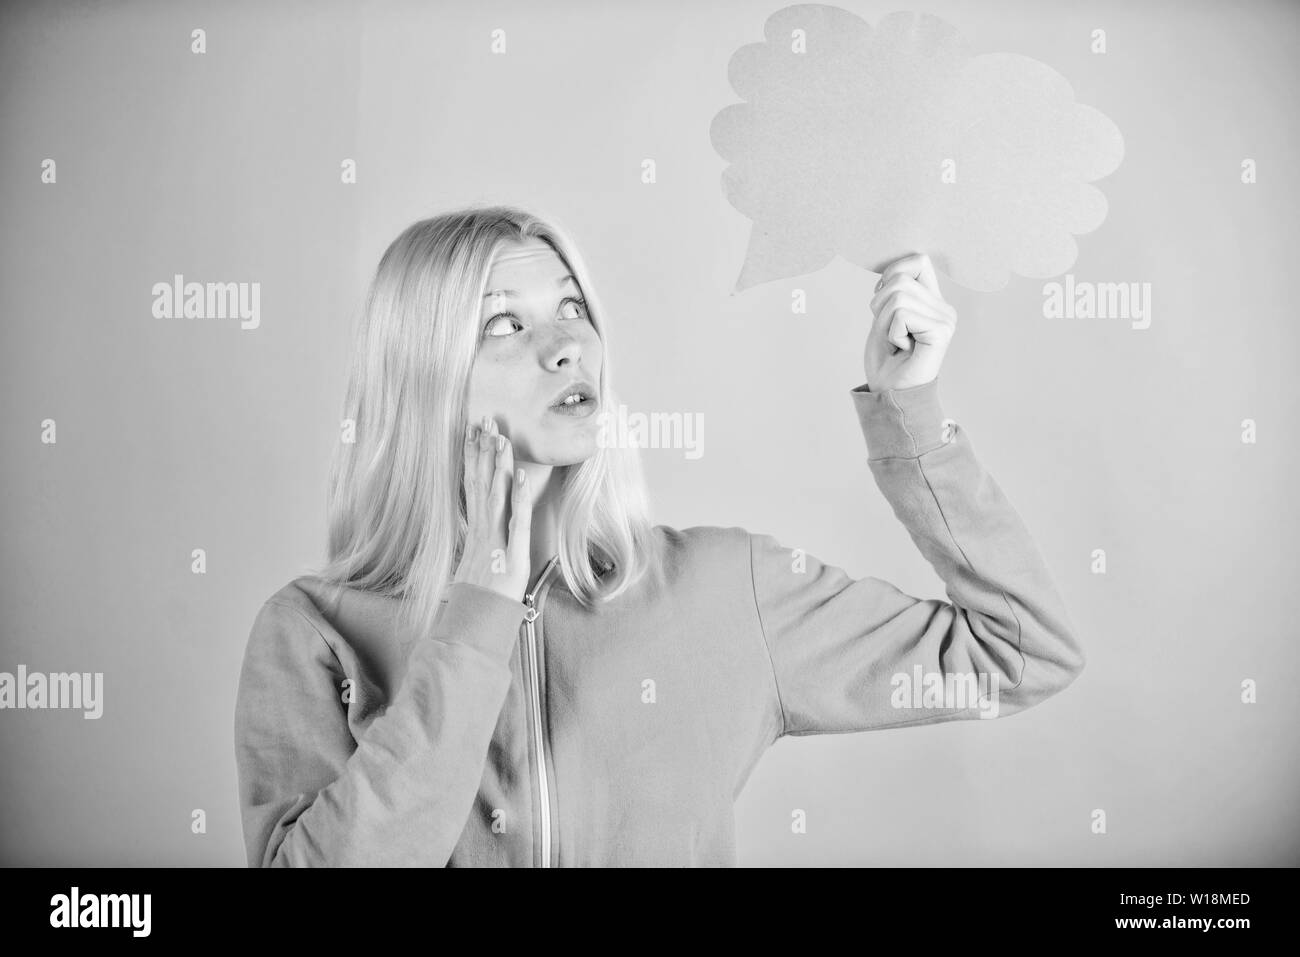 What is on her mind. Think about. Fresh idea. Idea and creativity concept. Ideas and thoughts copy space. Girl cute blonde with speech bubble. Thought of inspired adorable woman. Idea and inspiration. - Stock Image